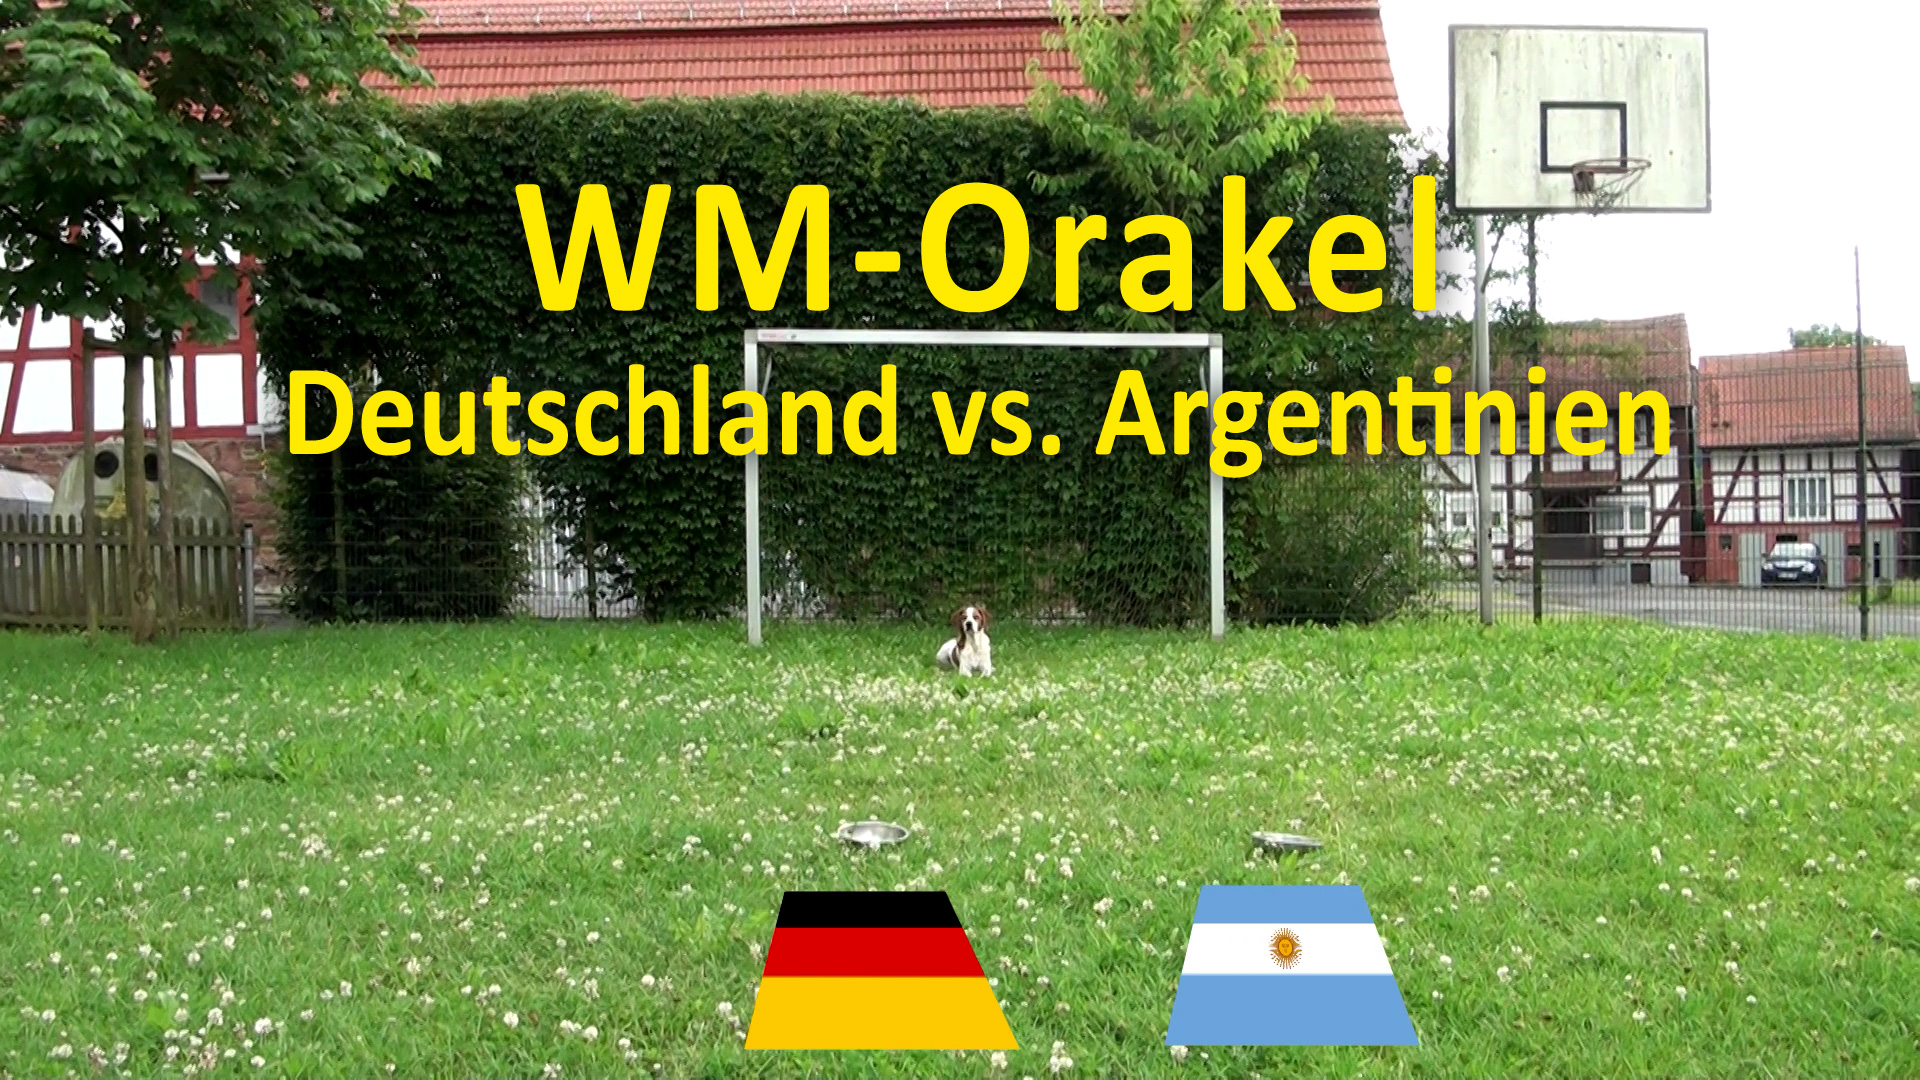 wm orakel deutschland gegen argentinien im wm2014 finale. Black Bedroom Furniture Sets. Home Design Ideas